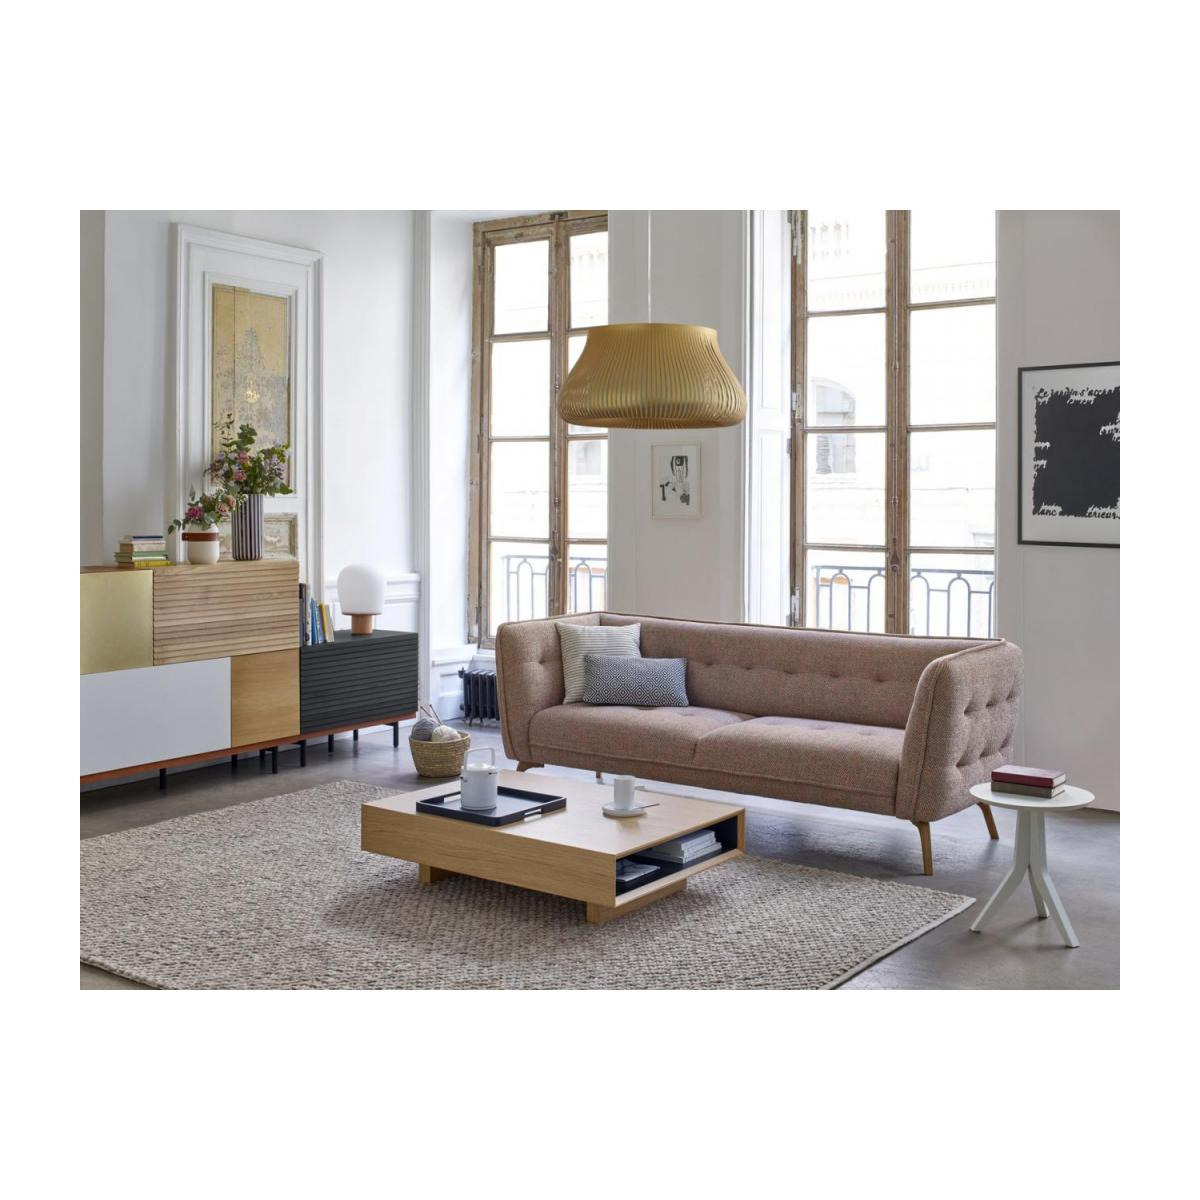 3 seater sofa in Fasoli fabric, grey sky and oak legs n°11